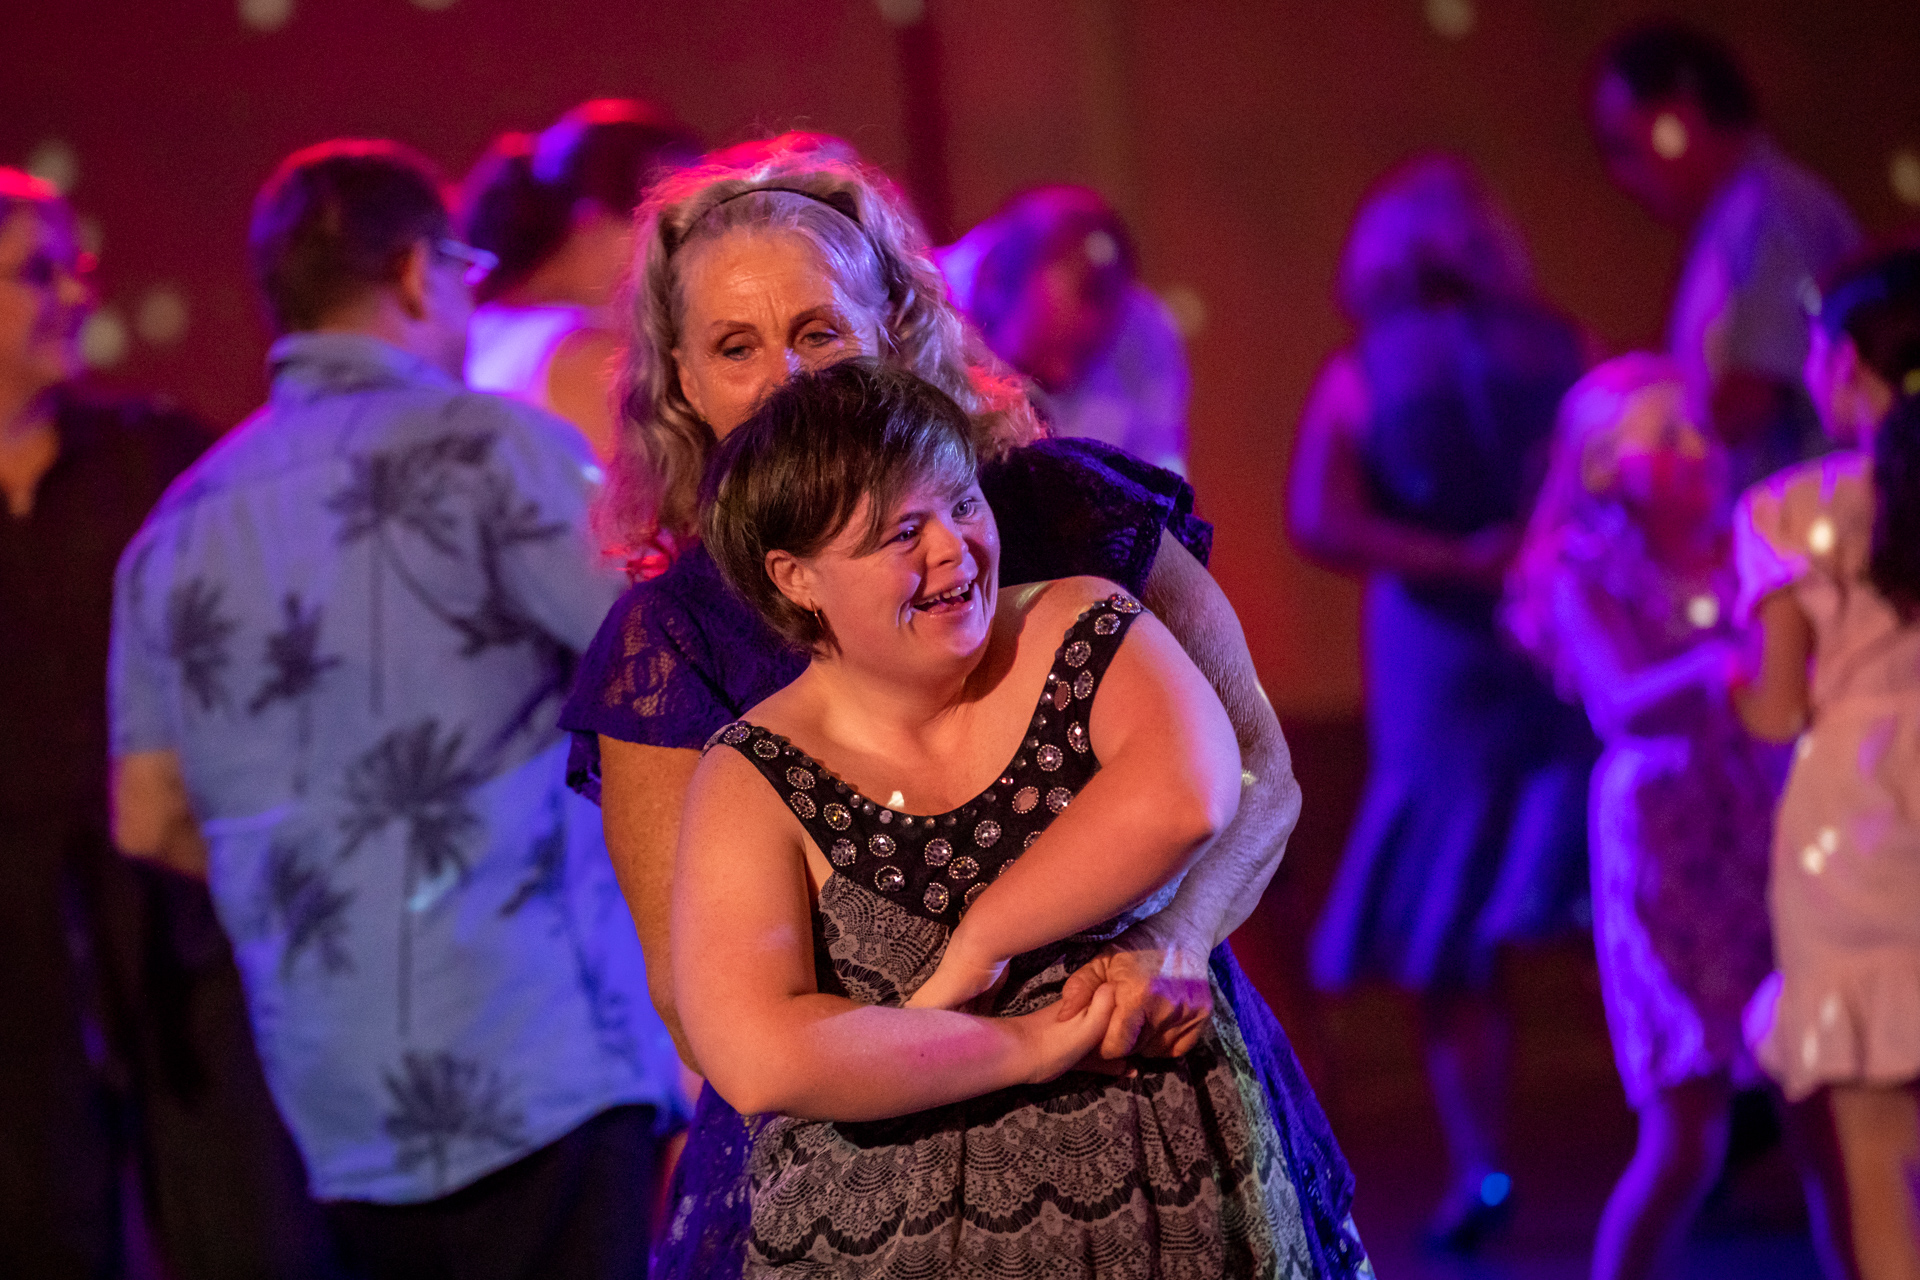 Inaugural Annual Dance Affair Gympie Image Leeroy Todd Photography v2